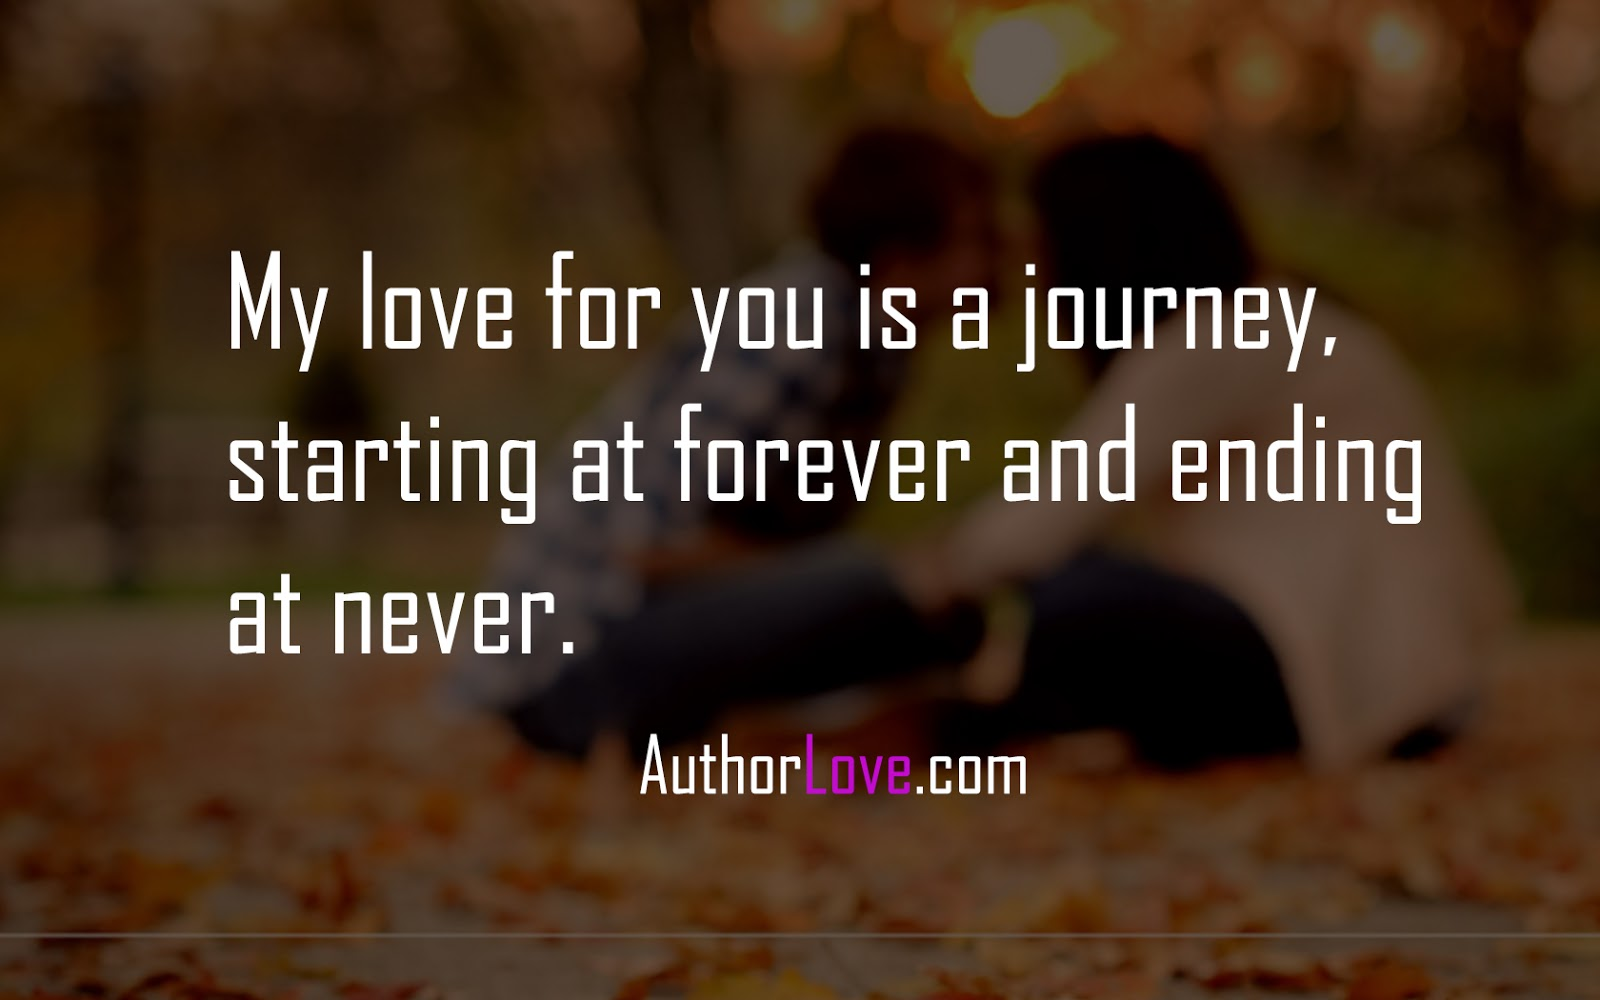 My love for you is a journey starting at forever and ending at never